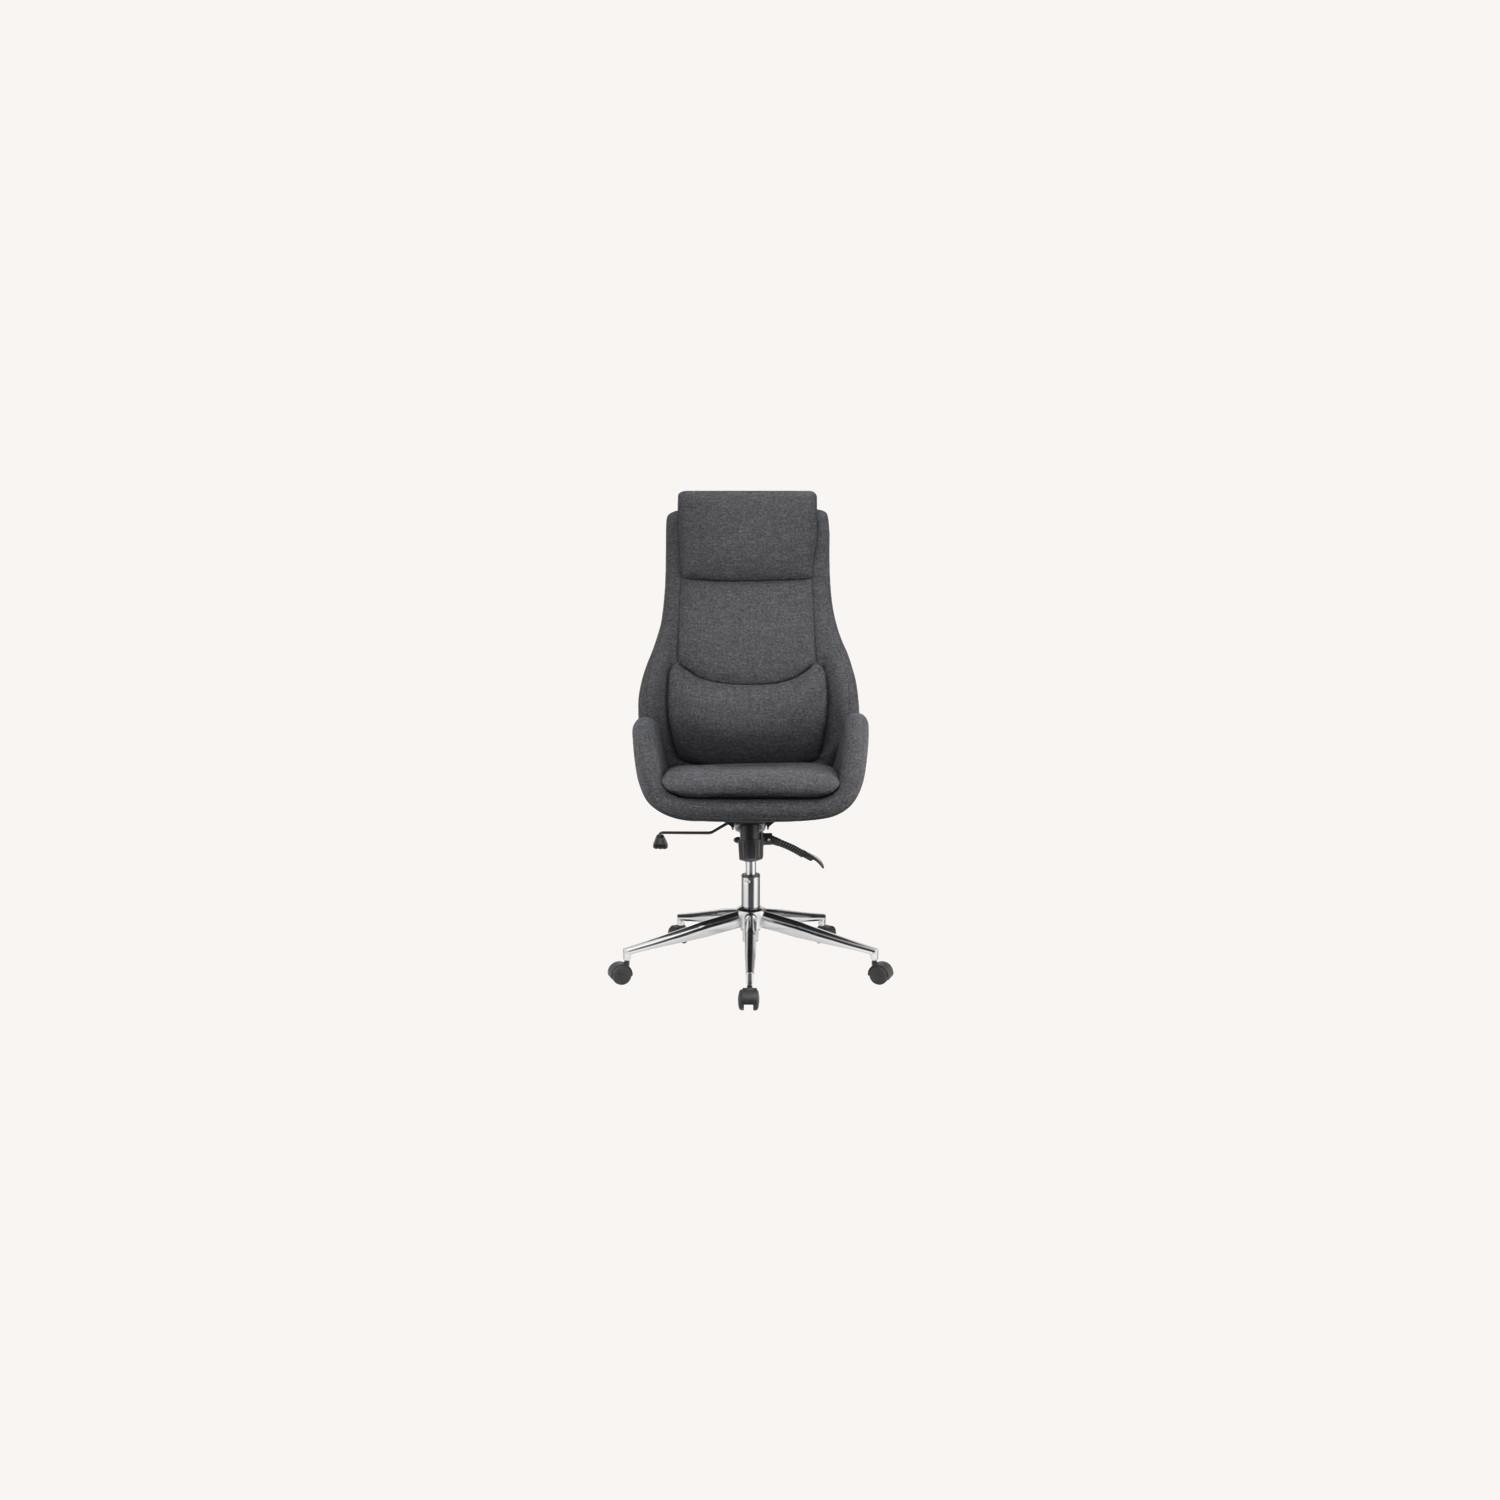 Office Chair In Grey Finish W/ Chrome Metal Base - image-5